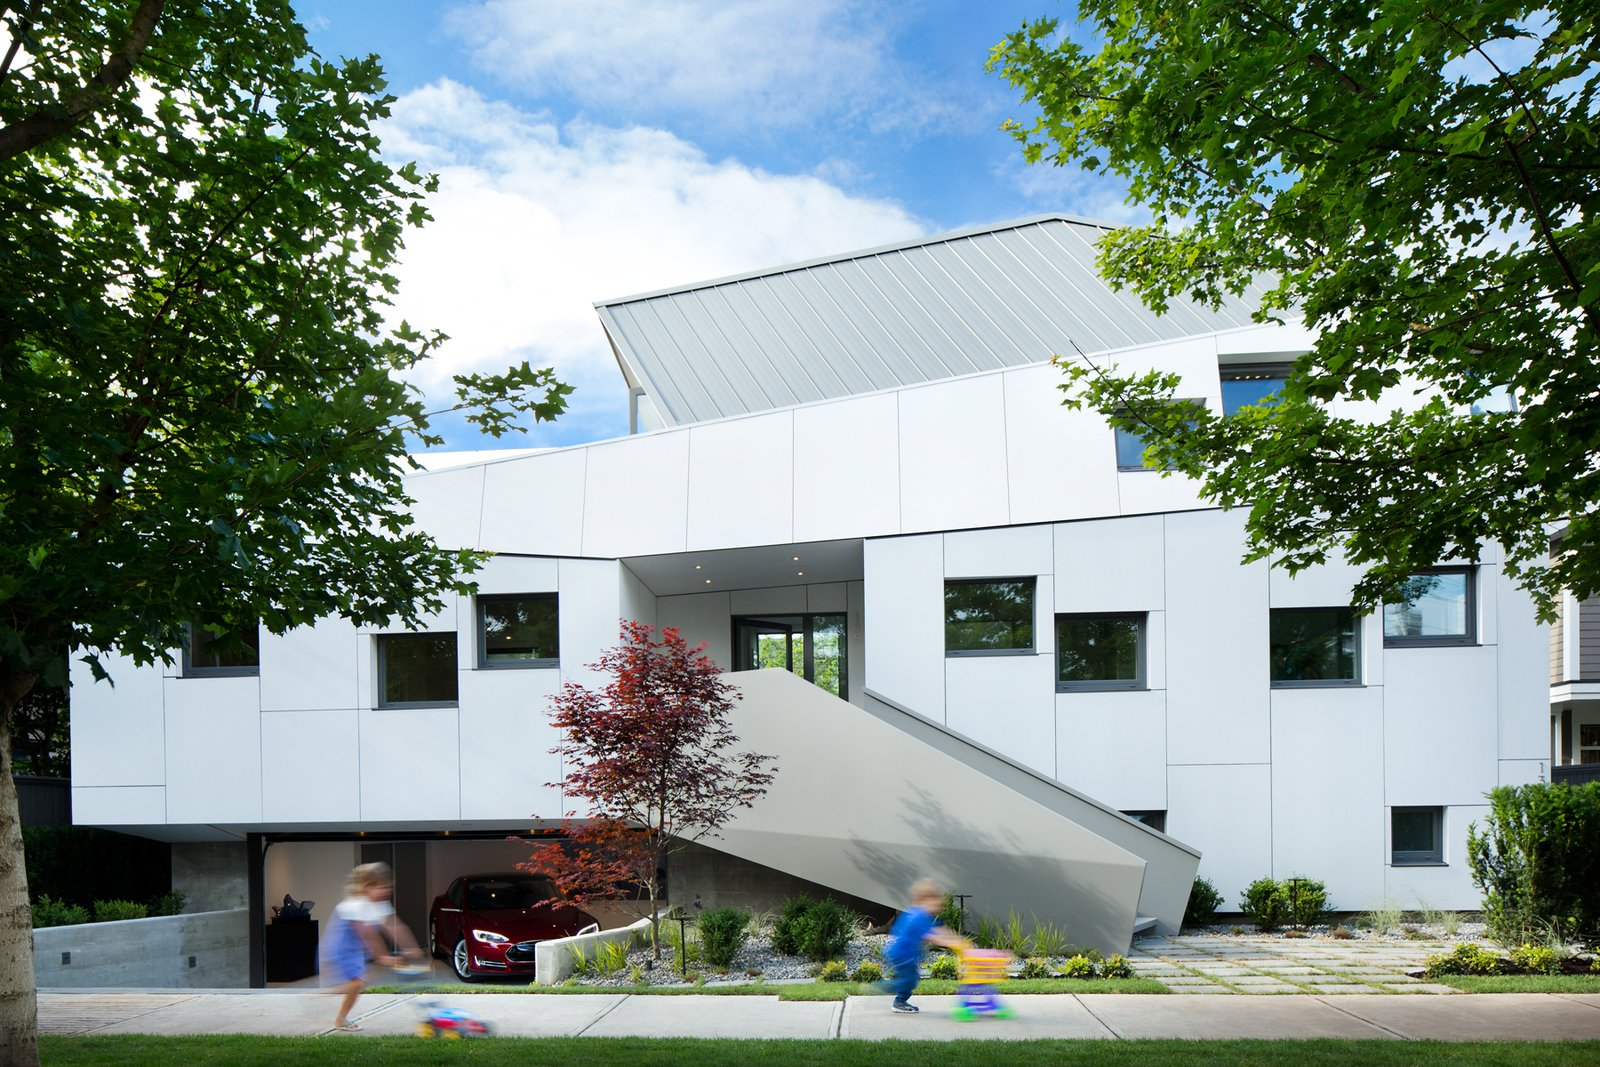 Vanglo House by LWPAC Lang Wilson Practice in Architecture Culture